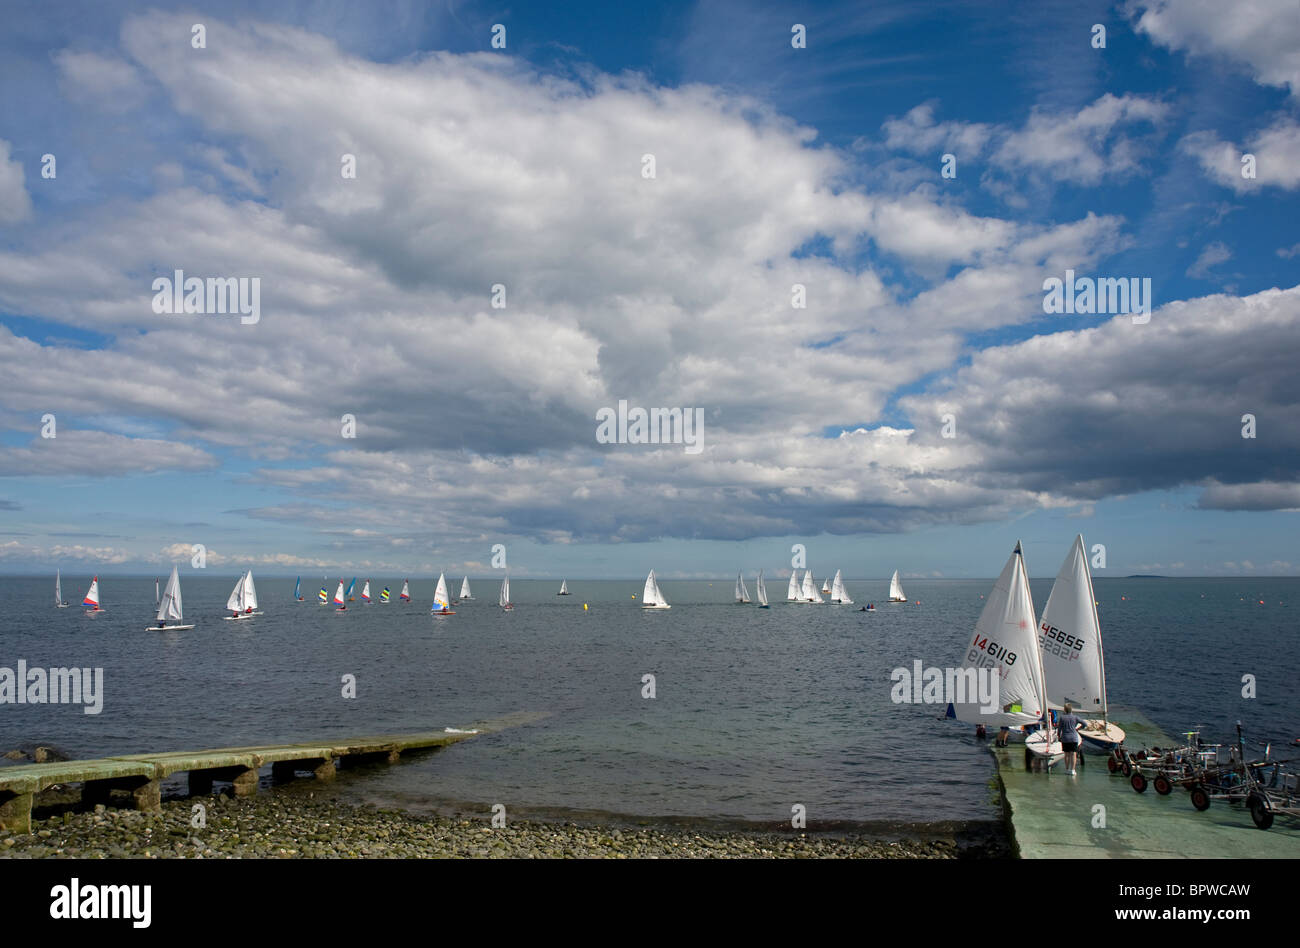 Sailing at County Antrim Yacht Club, Whitehead, Northern